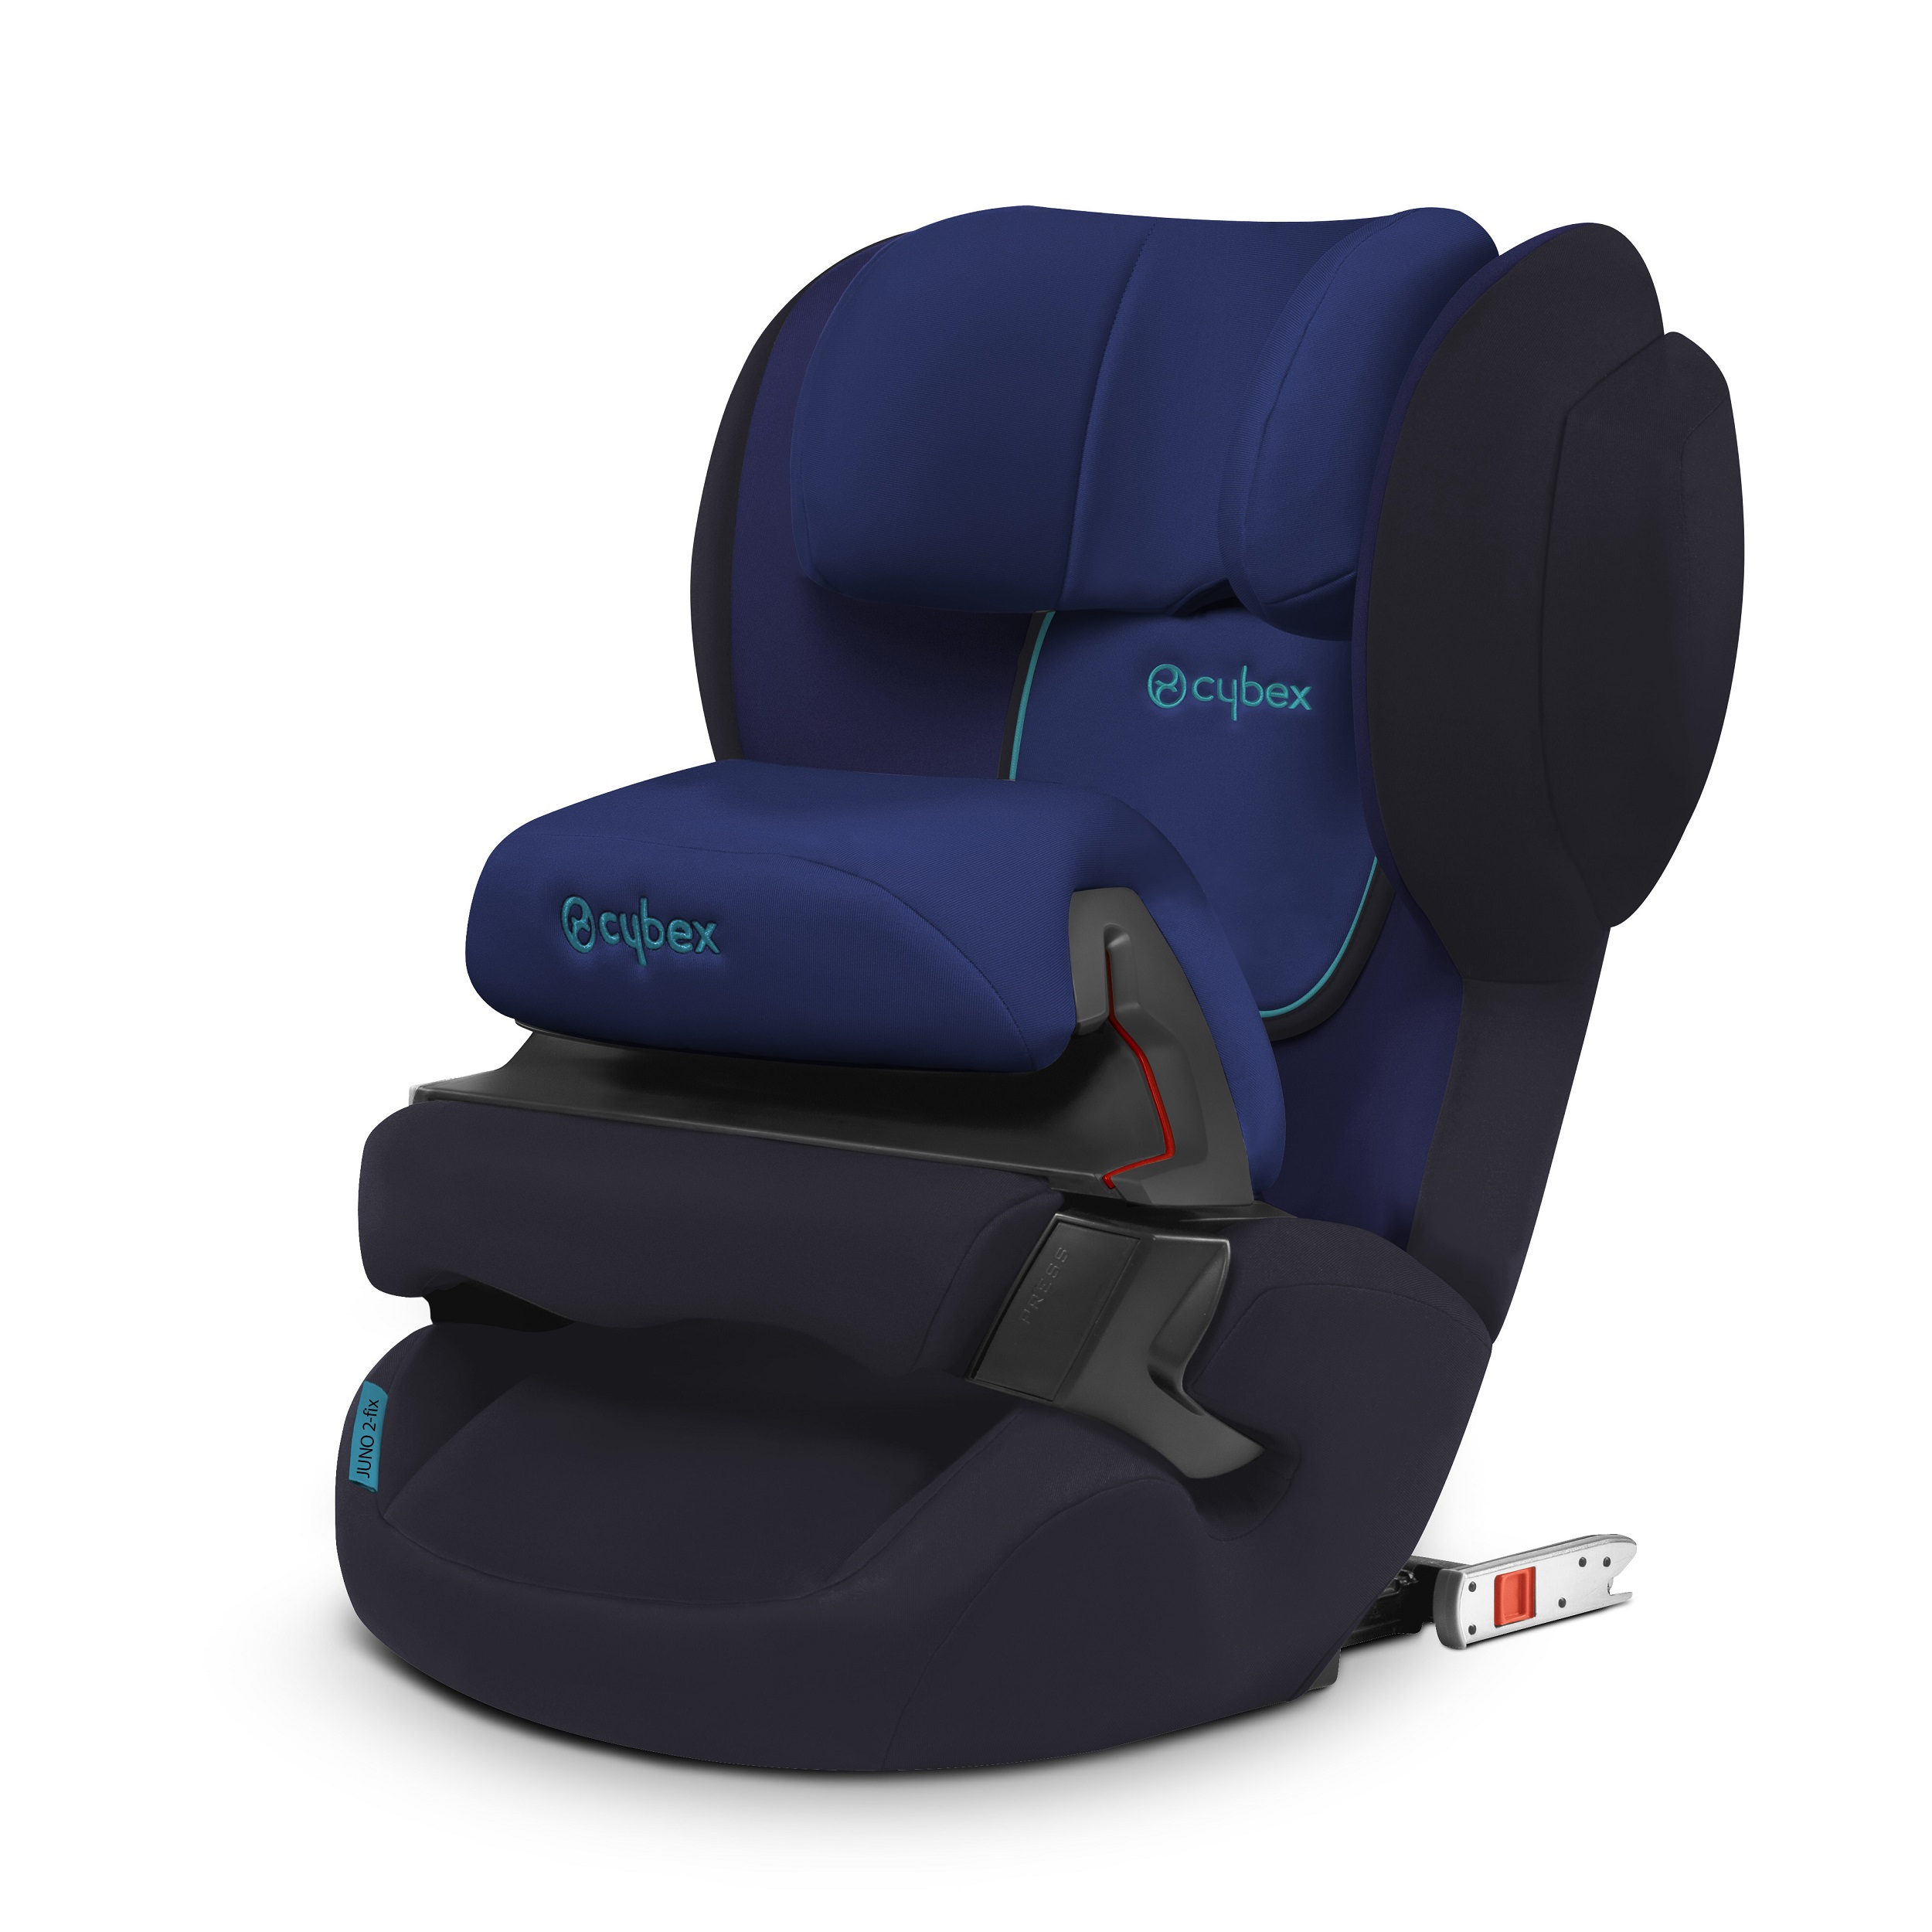 Child Car Safety Seats Cybex 517000955 for girls and boys Baby seat Kids Children chair autocradle booster